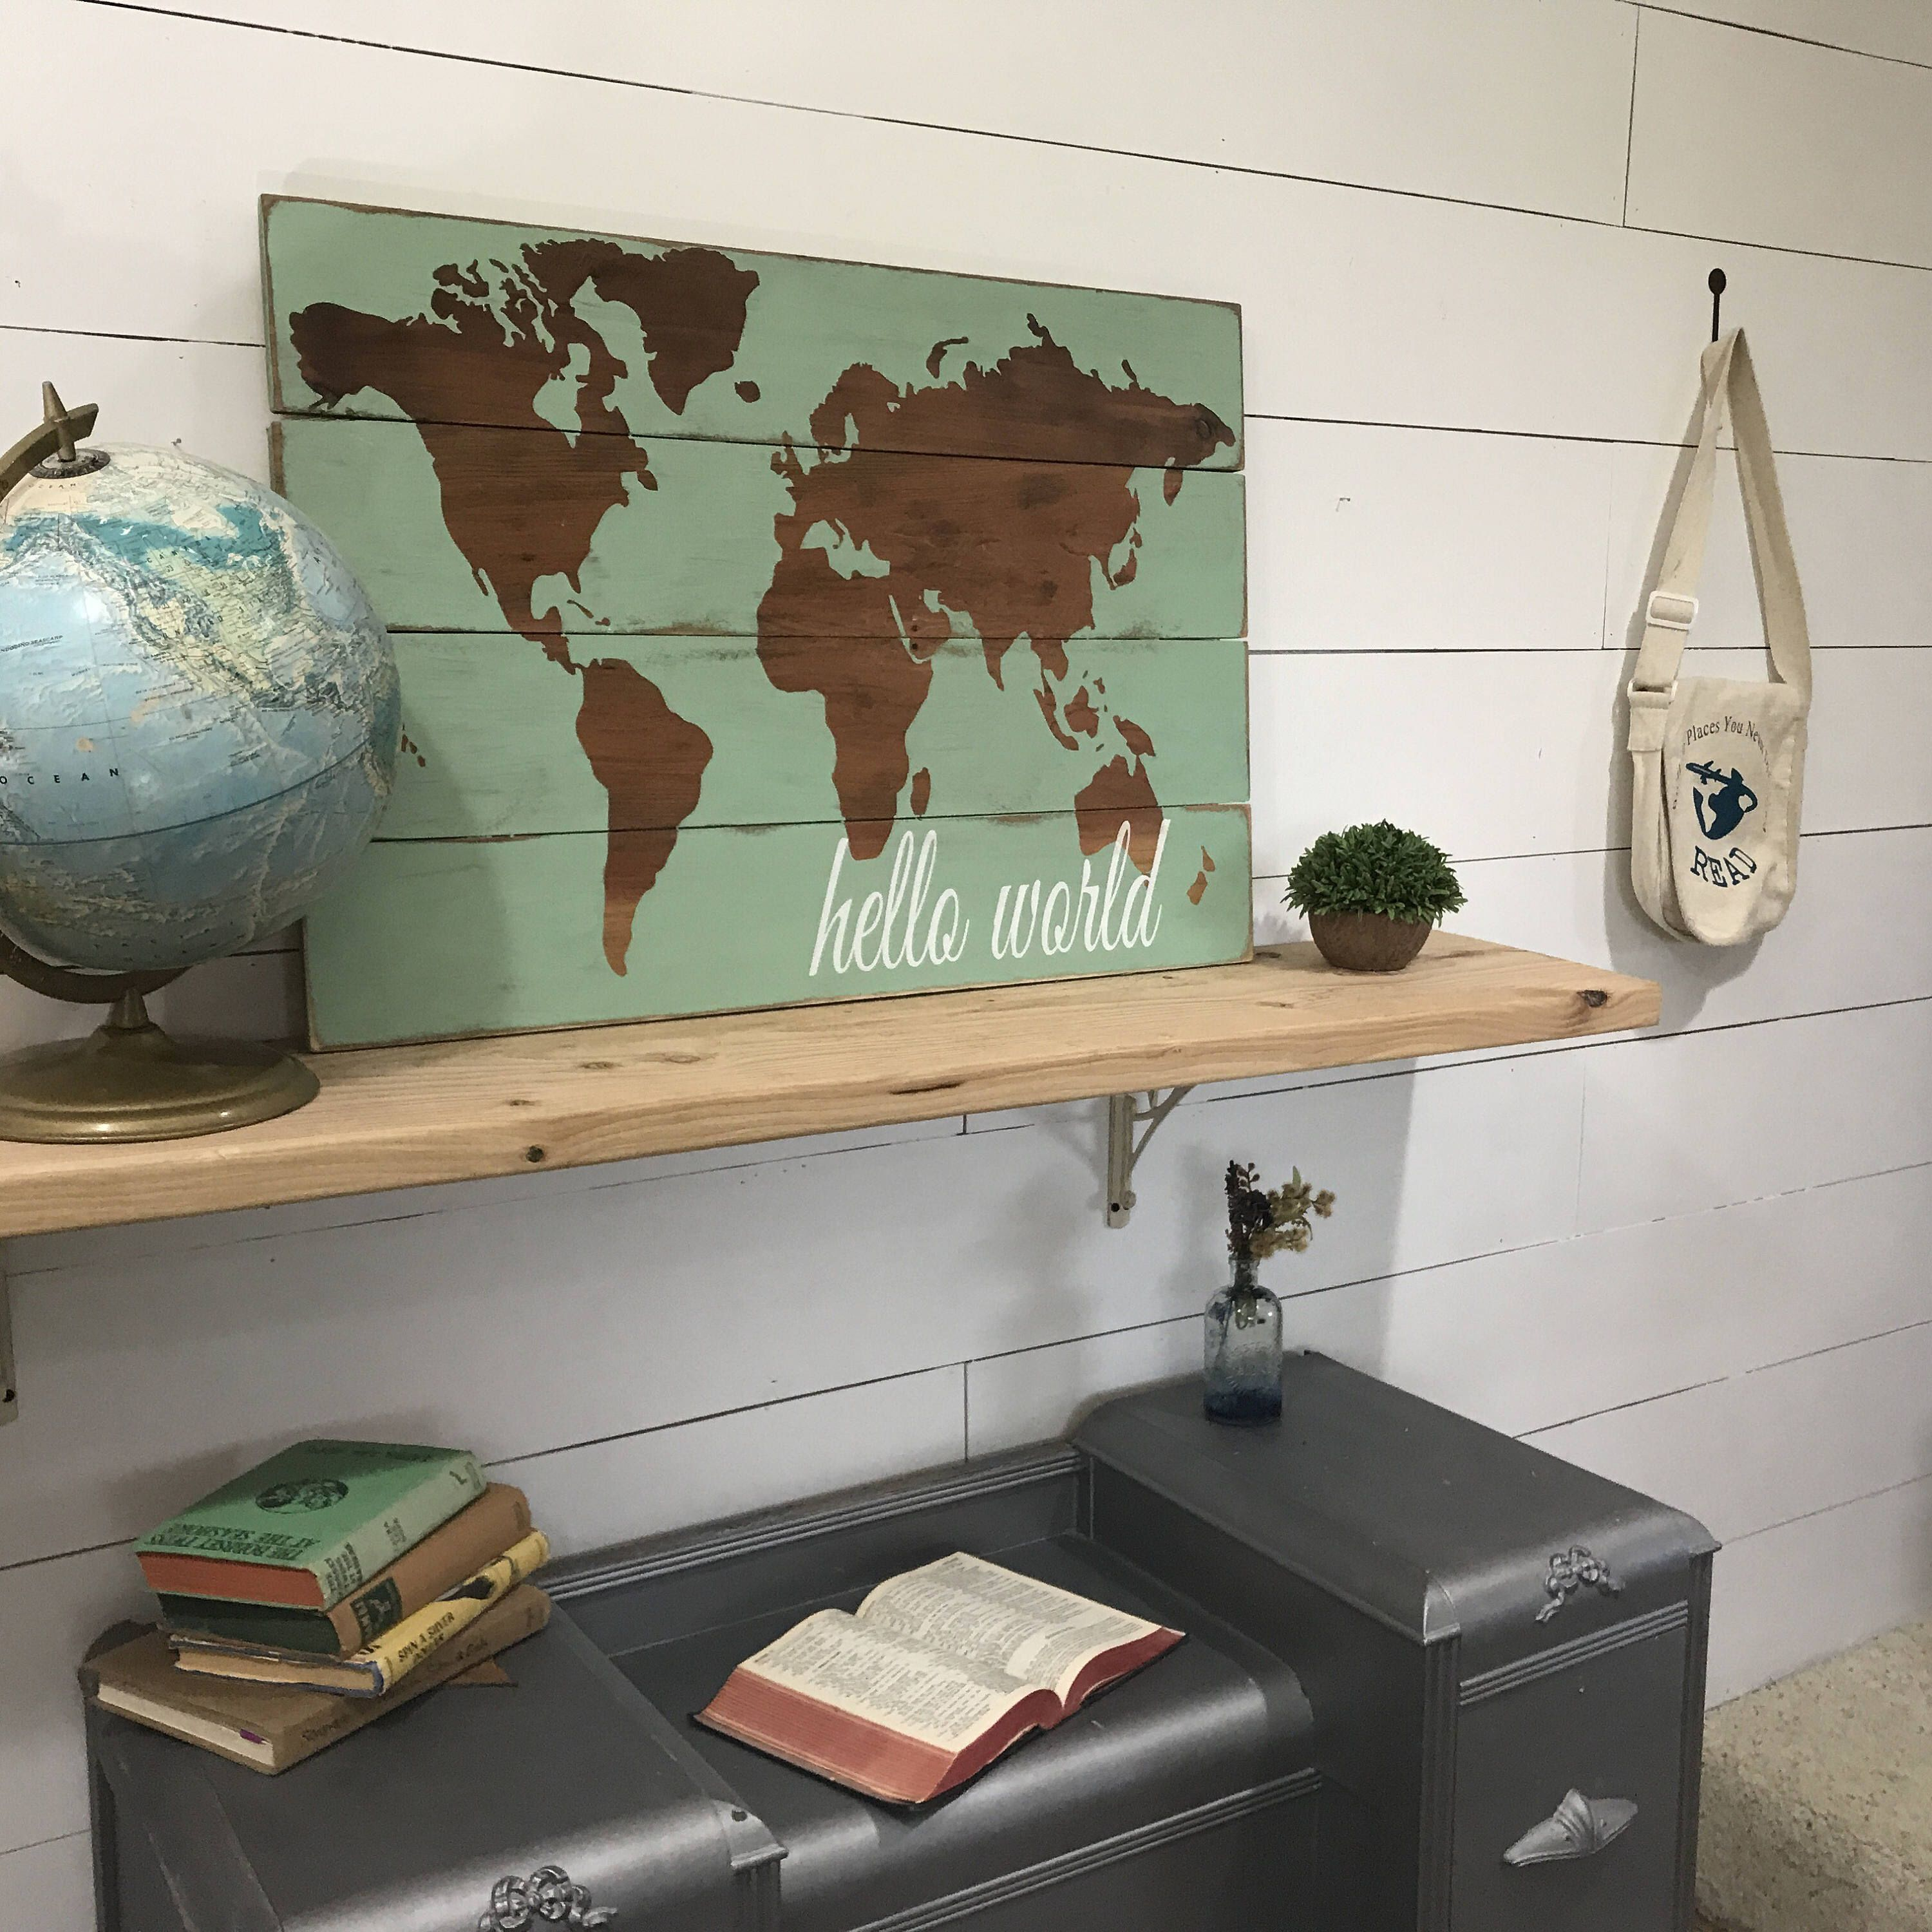 A personal favorite from my etsy shop httpsetsylisting hello world map world nursery decor baby room decor rustic wood map rustic world map wooden nursery map map wall hanging gumiabroncs Gallery